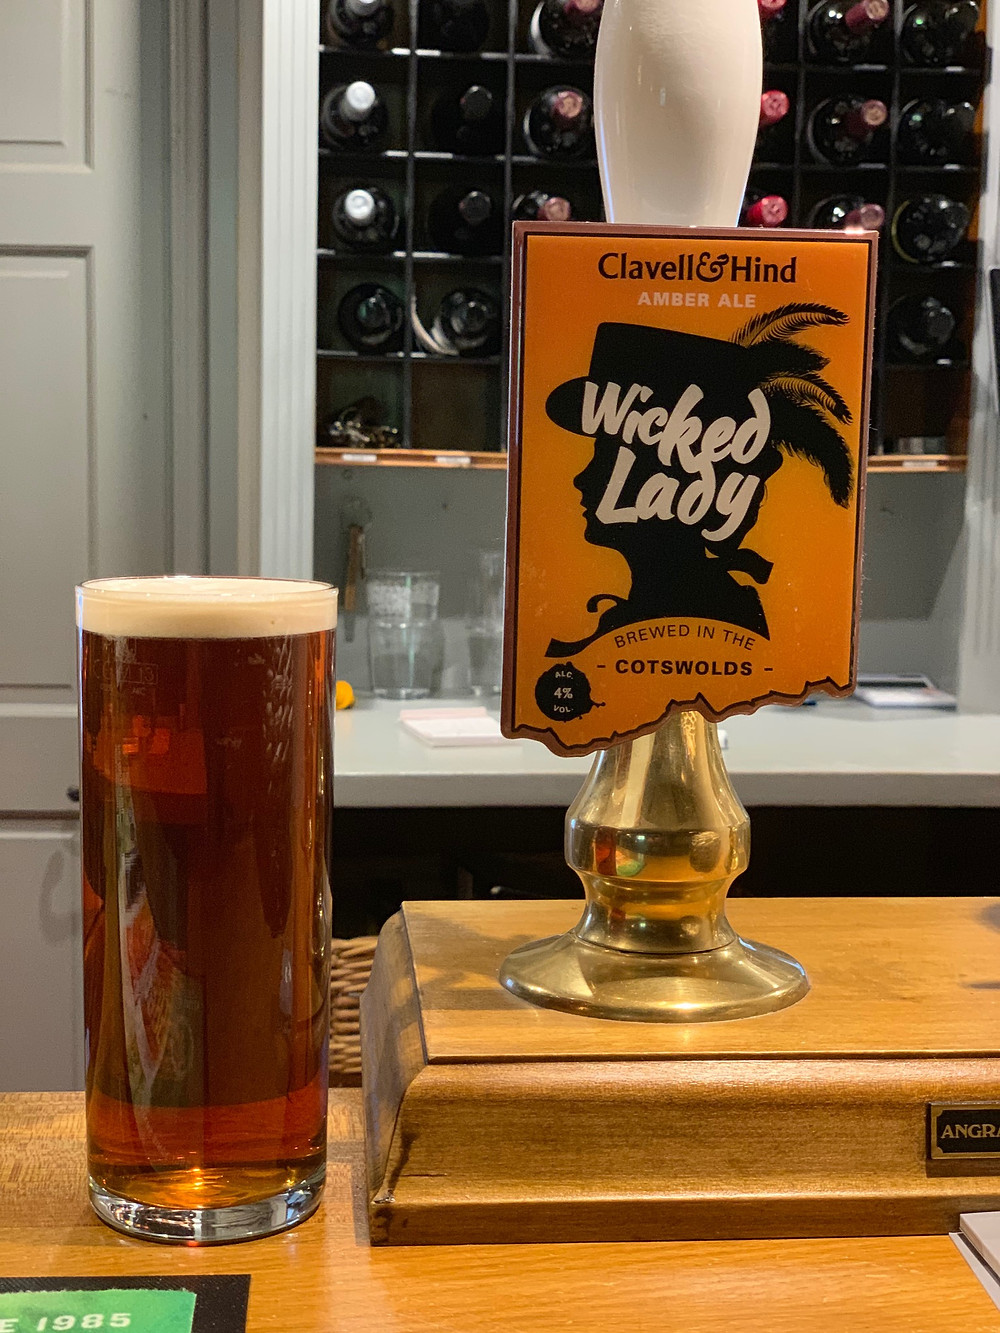 Local beer for a local pub